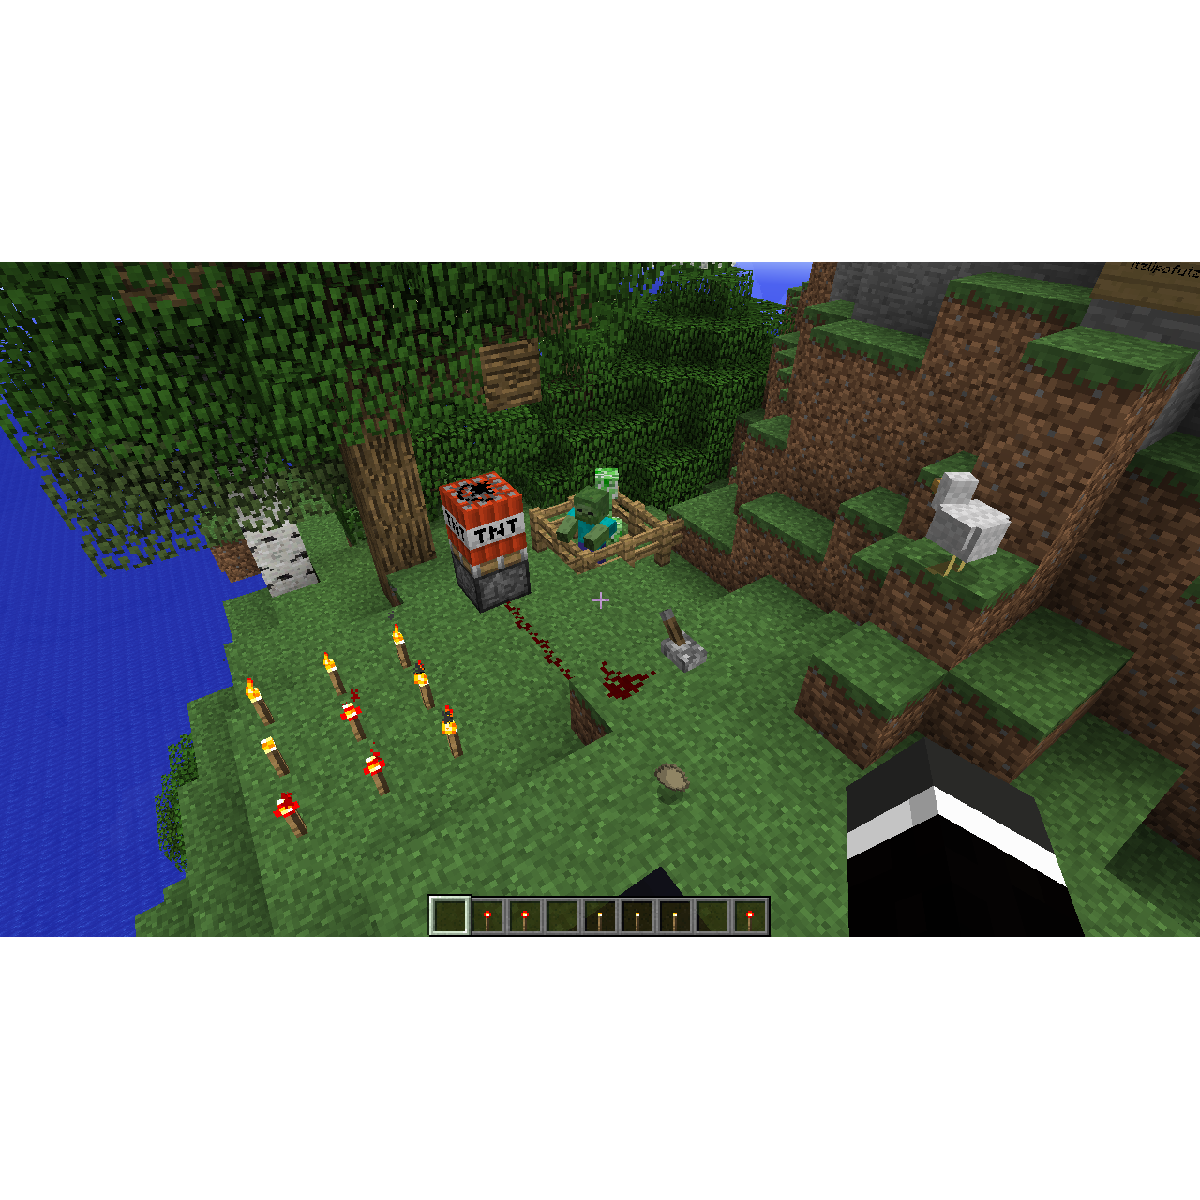 Minecraft for PC/Mac [Online